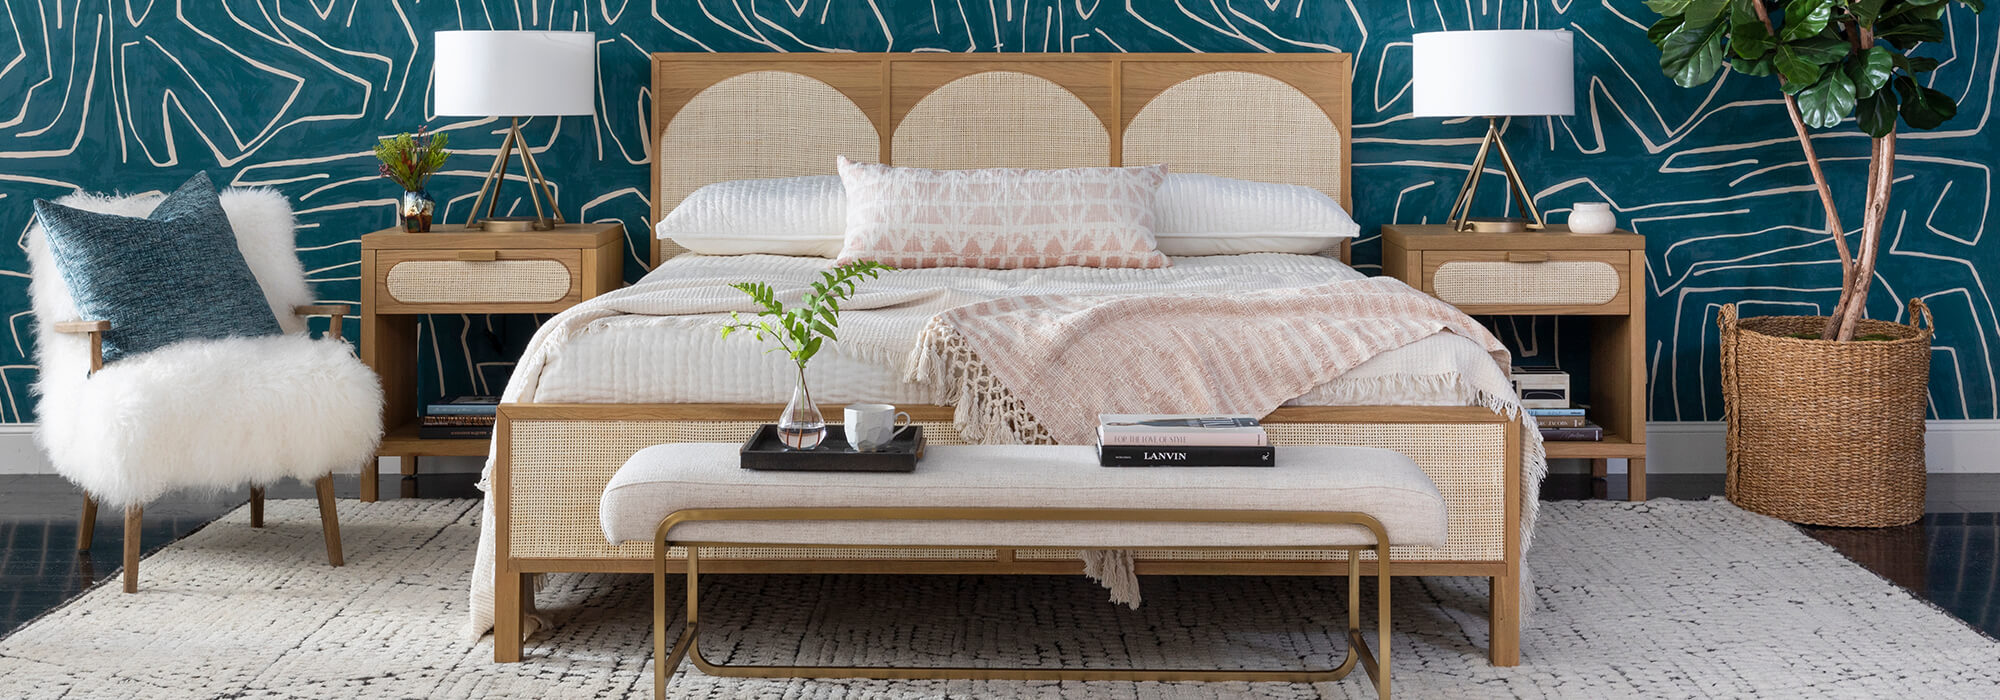 Modern Bedroom Furniture | High Fashion Home